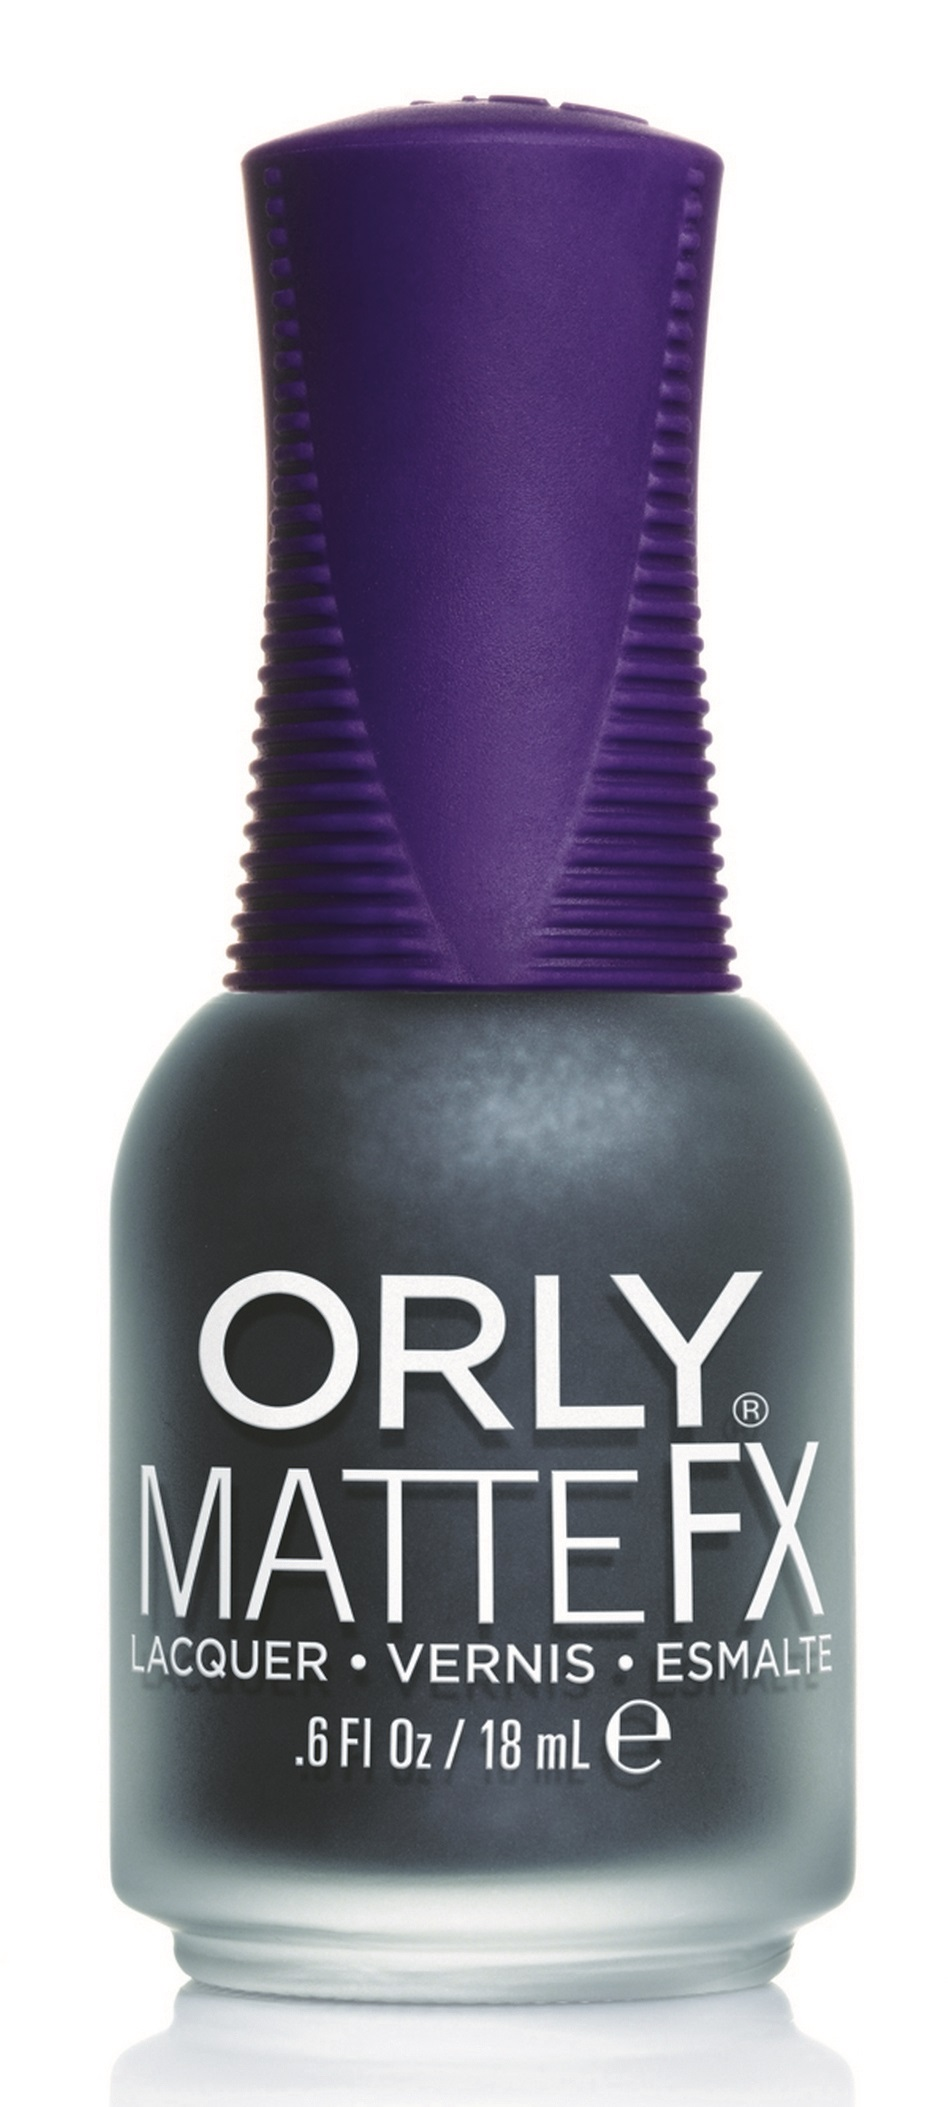 ORLY 811 лак для ногтей / Iron Butterfly MATTE лак для ногтей orly matte fx collection 811 цвет 811 iron butterfly variant hex name 302e2e